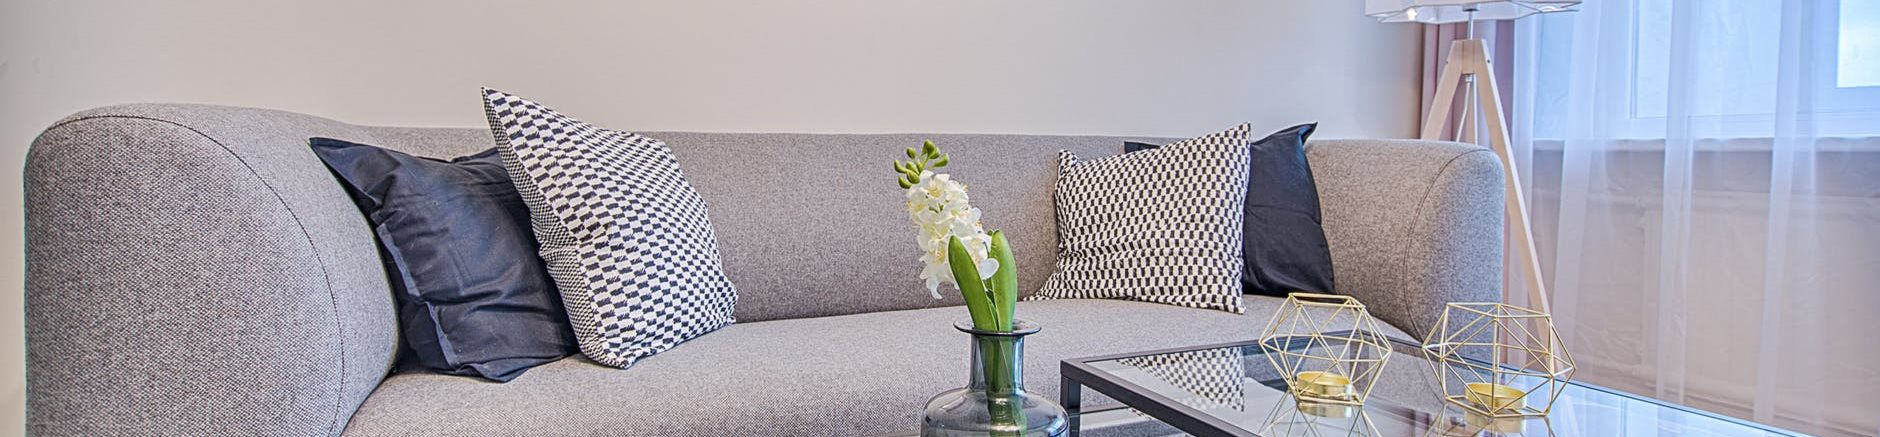 Classic Living Room Design, at Dearborn View Apartments, Inkster